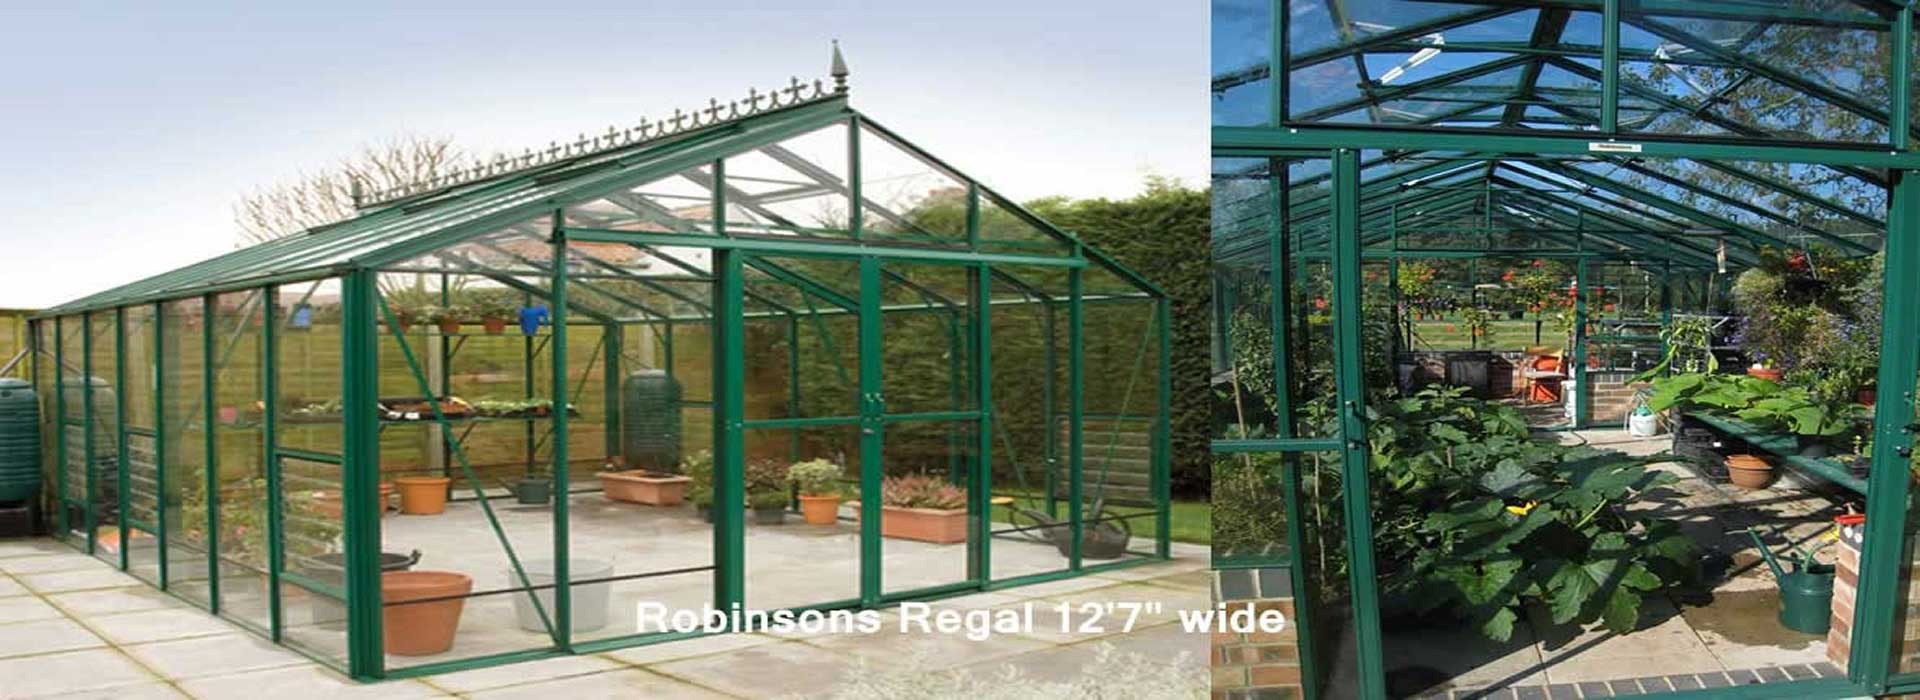 Robinsons Regal Greenhouses